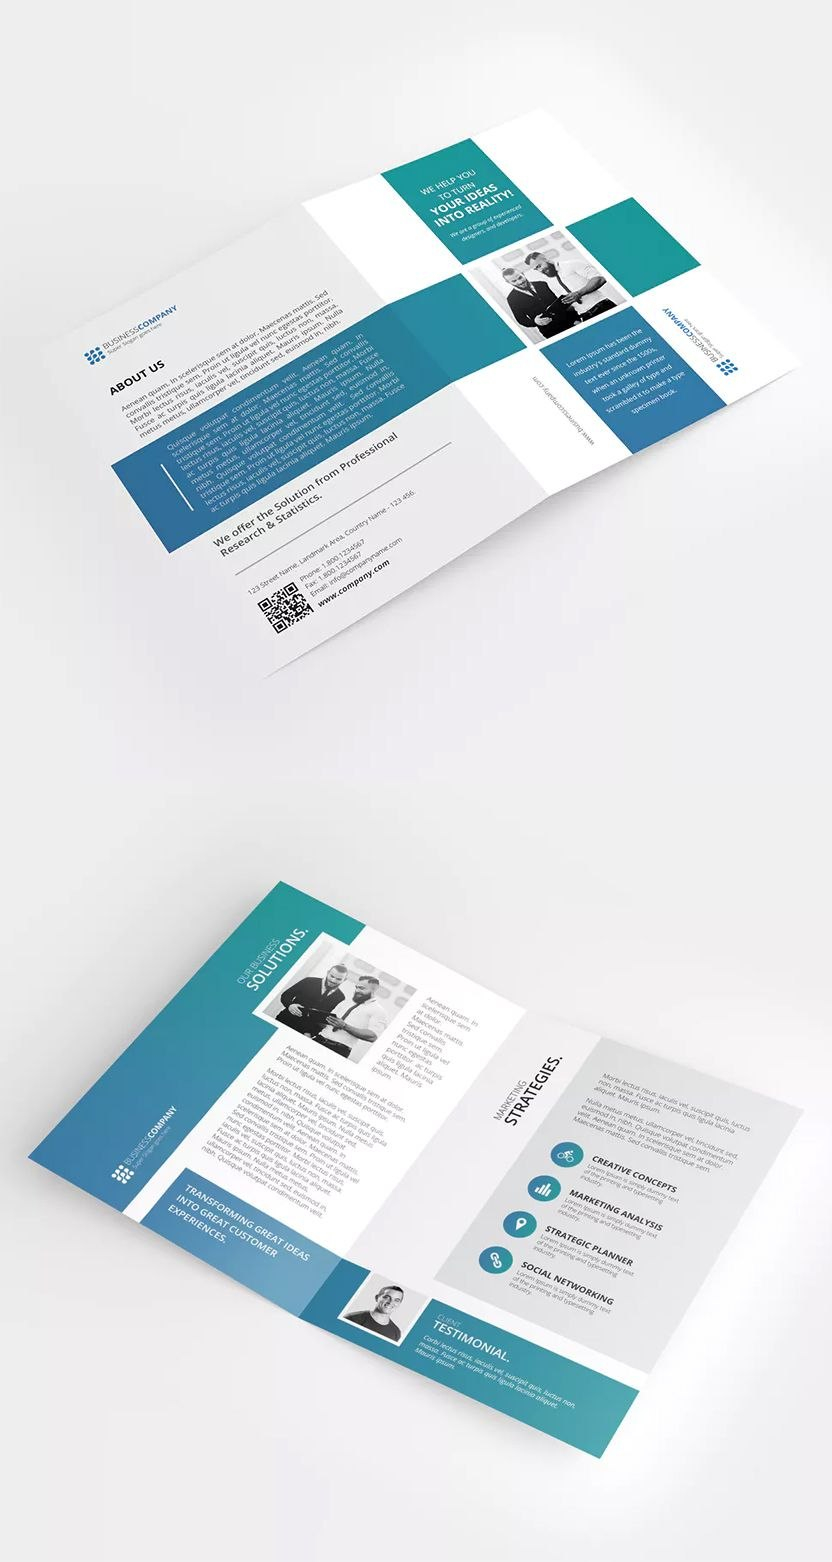 A Bifold Brochure Template Psd • Clean And Modern Layout • Cmyk With Two Fold Brochure Template Psd